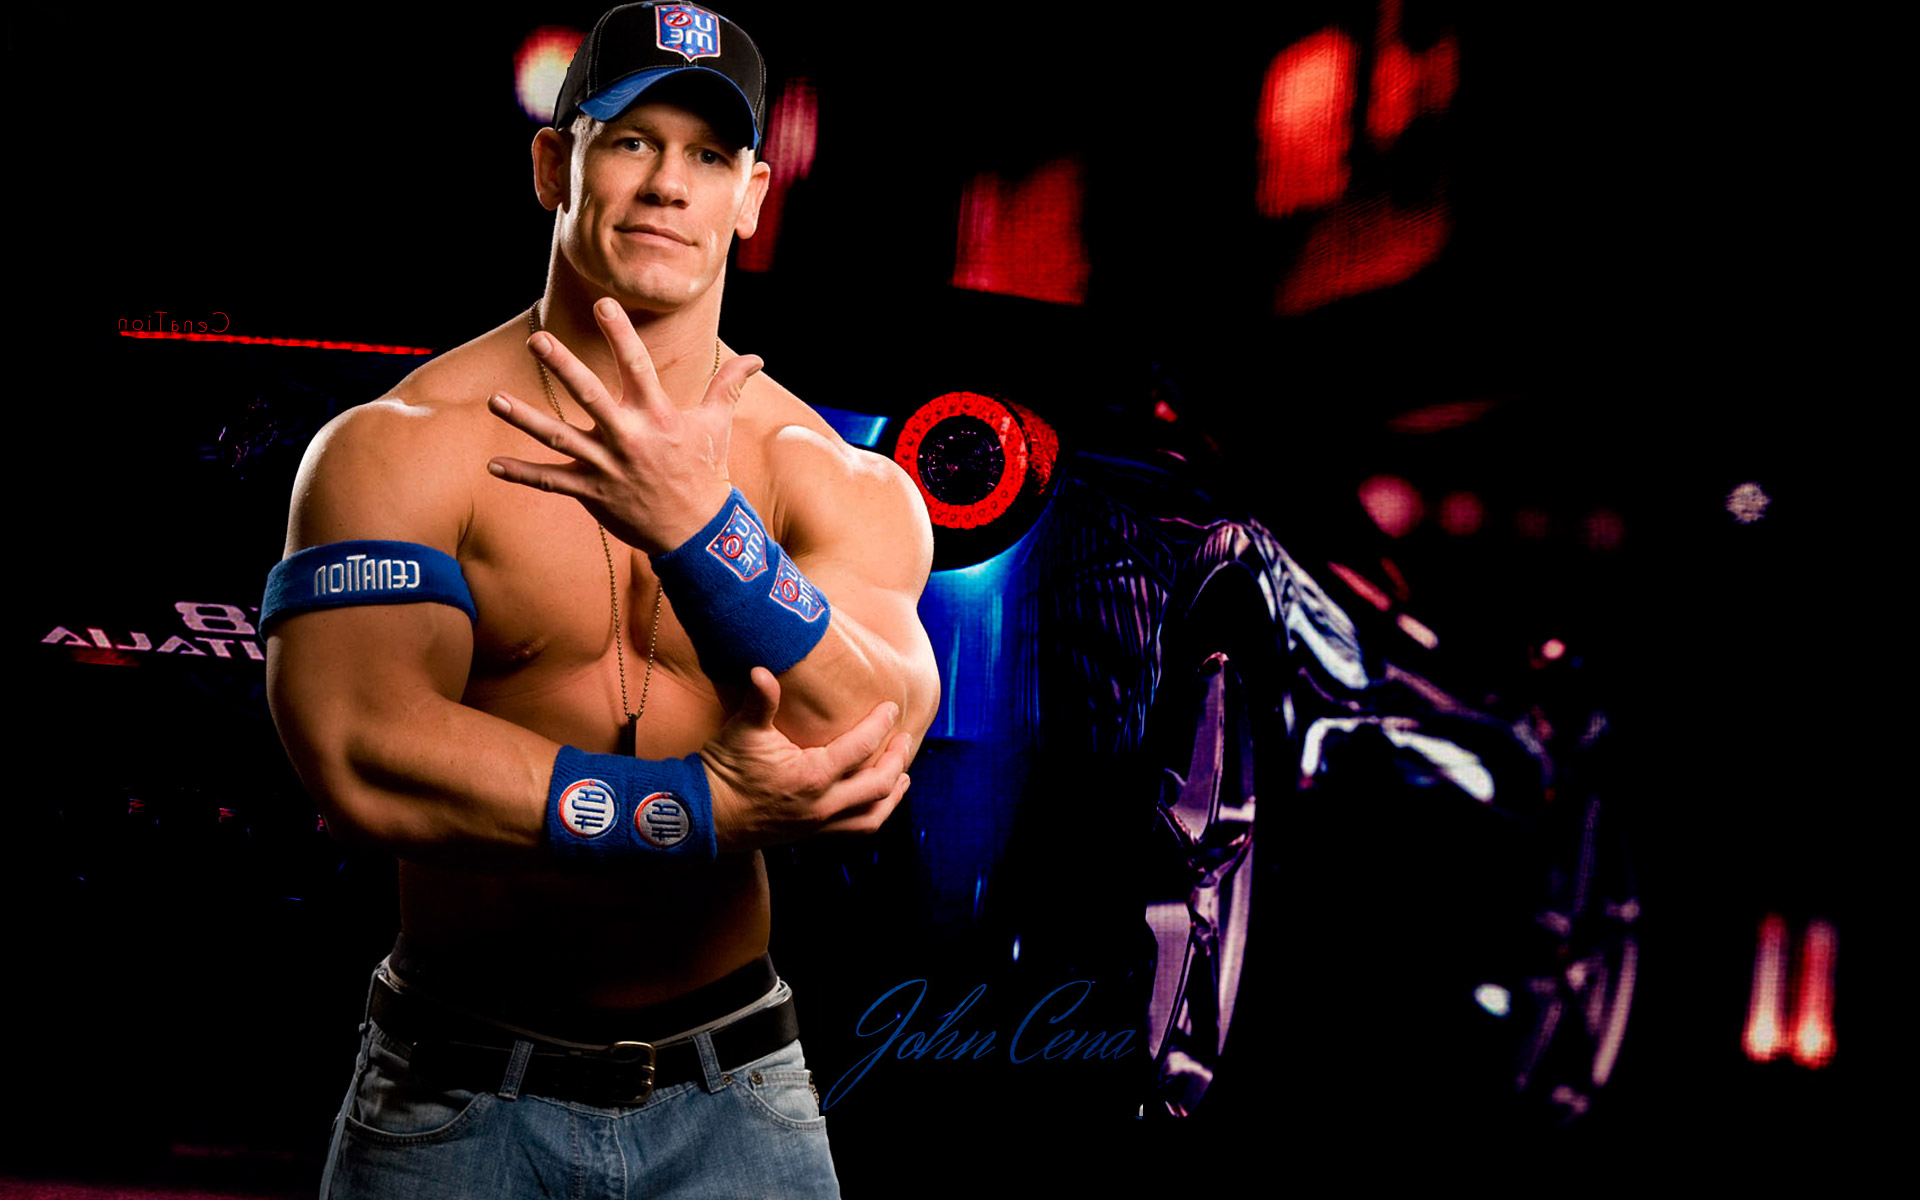 2014 John Cena Wallpaper Android Wallpaper WallpaperLepi 1920x1200